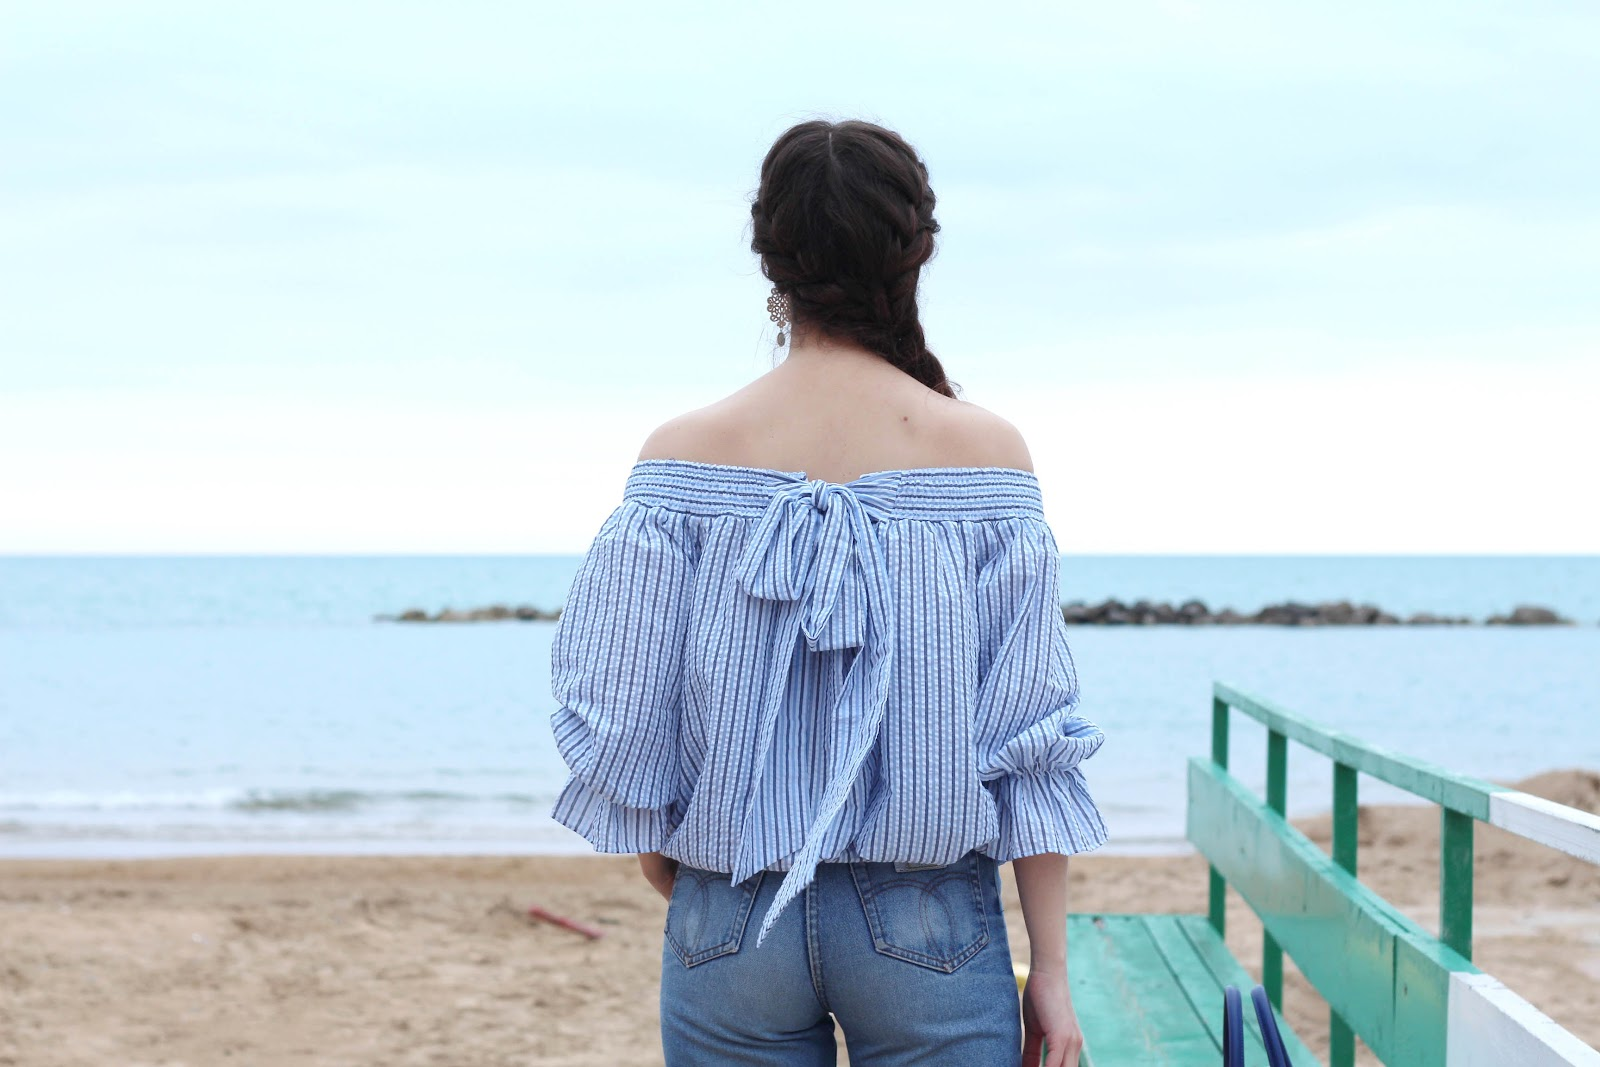 fashion style blogger outfit ootd italian girl italy vogue glamour pescara light blue bow off-the-shoulder top bluse chicwish trend denim jeans 90 calends blue bag borsa blu prospering flats ballerine shoes scarpe fabijoux earrings orecchini macramè braid hairstyle hair